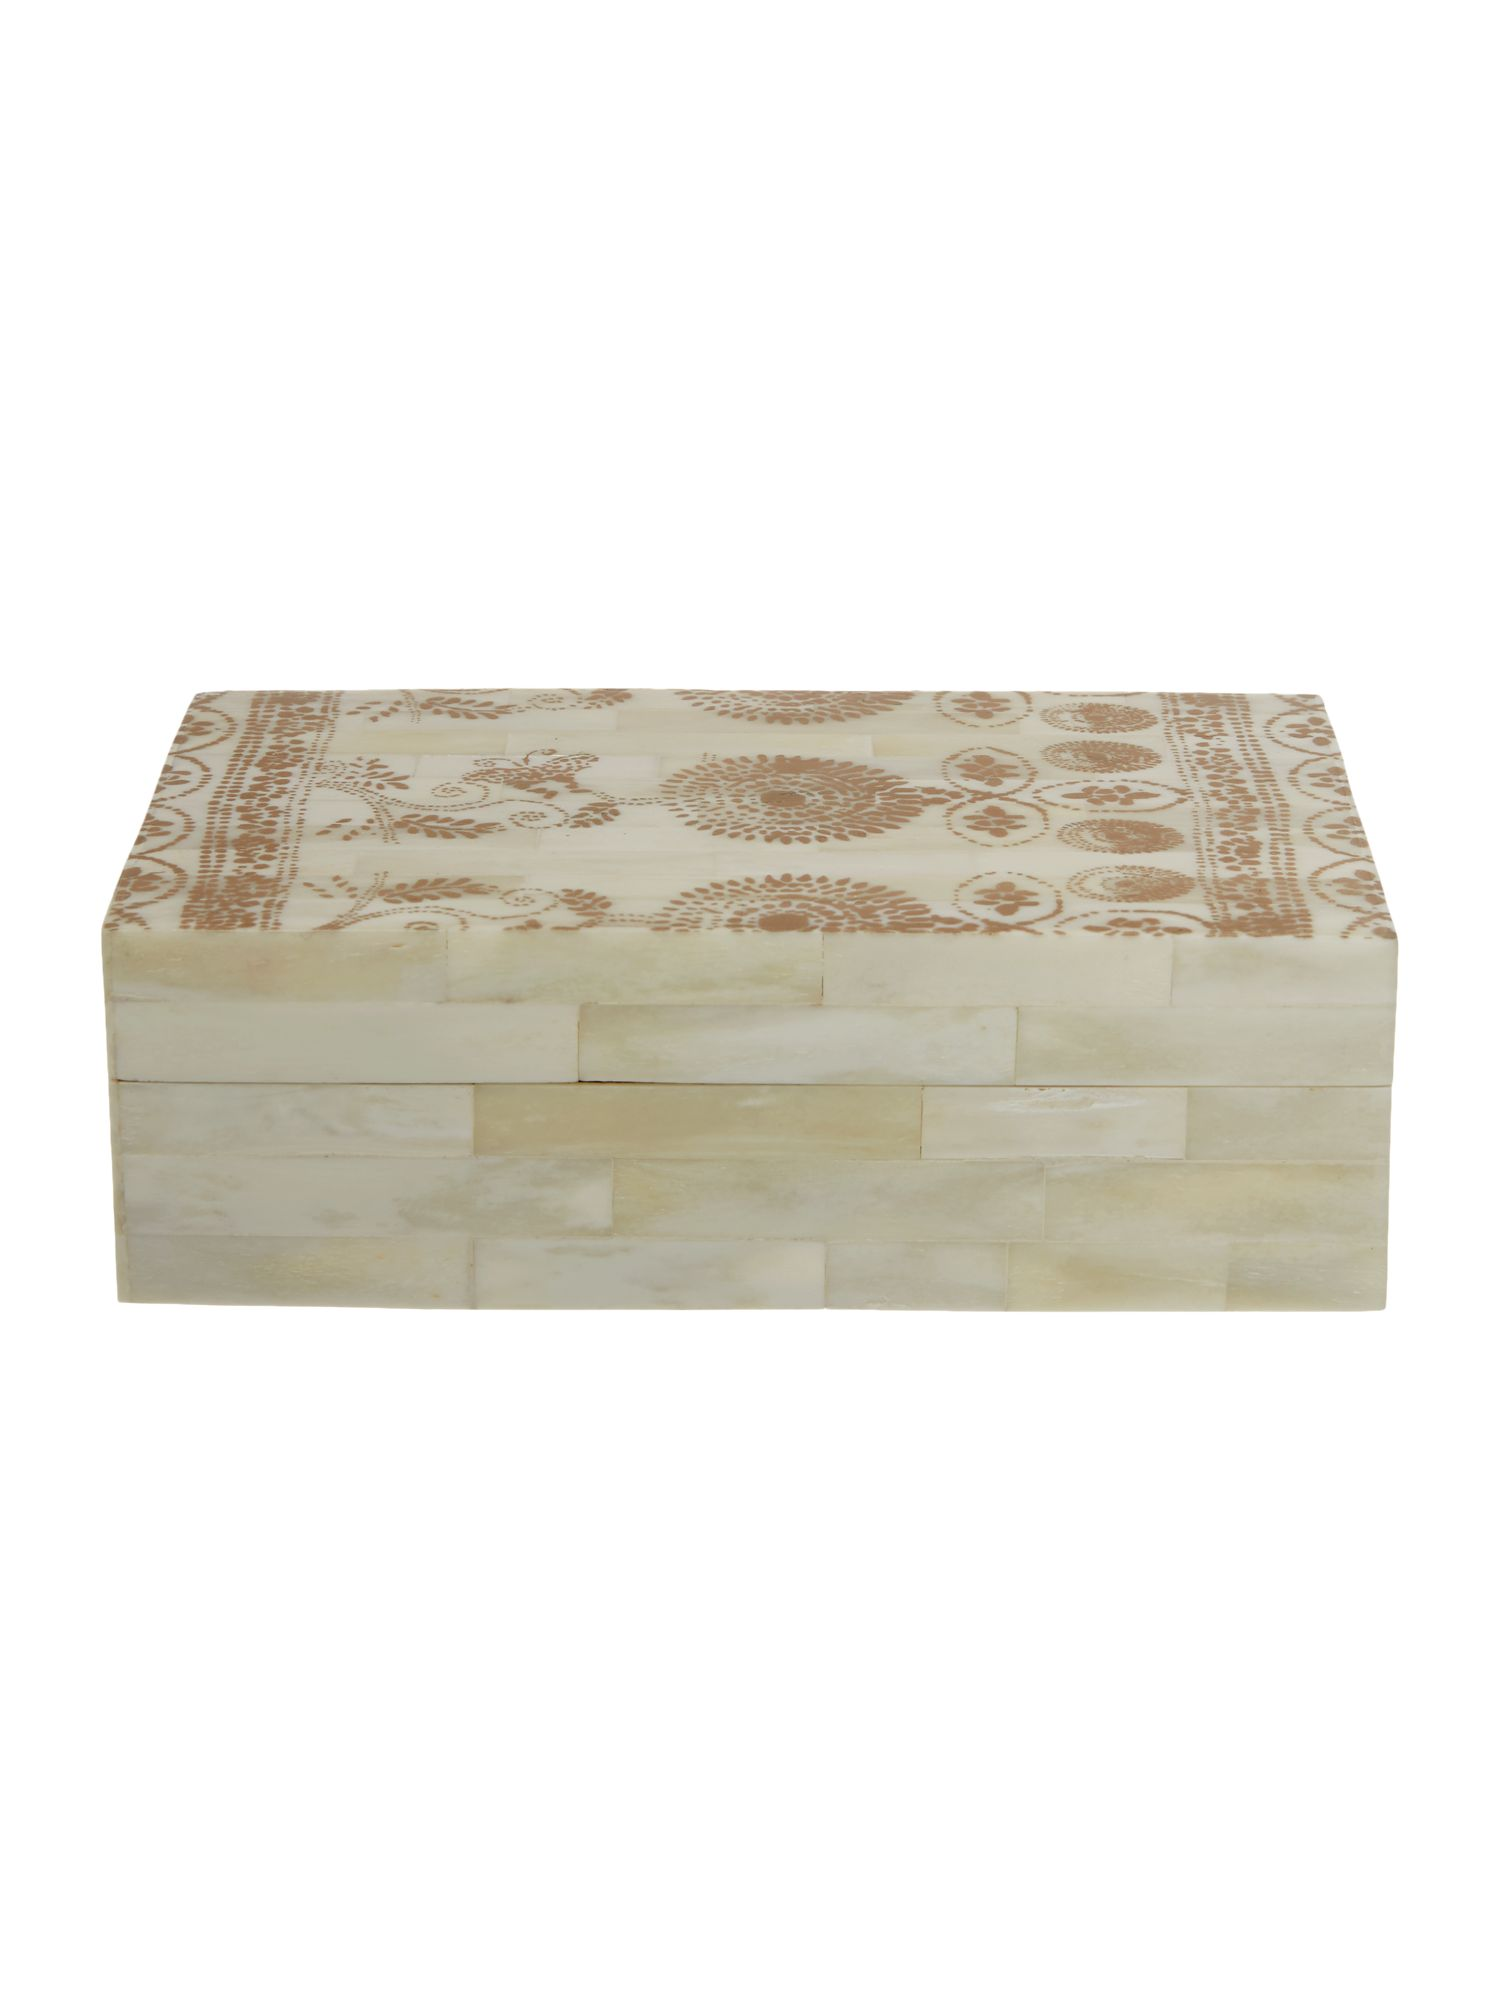 Junipa Golden Floral Bone Box, N/A